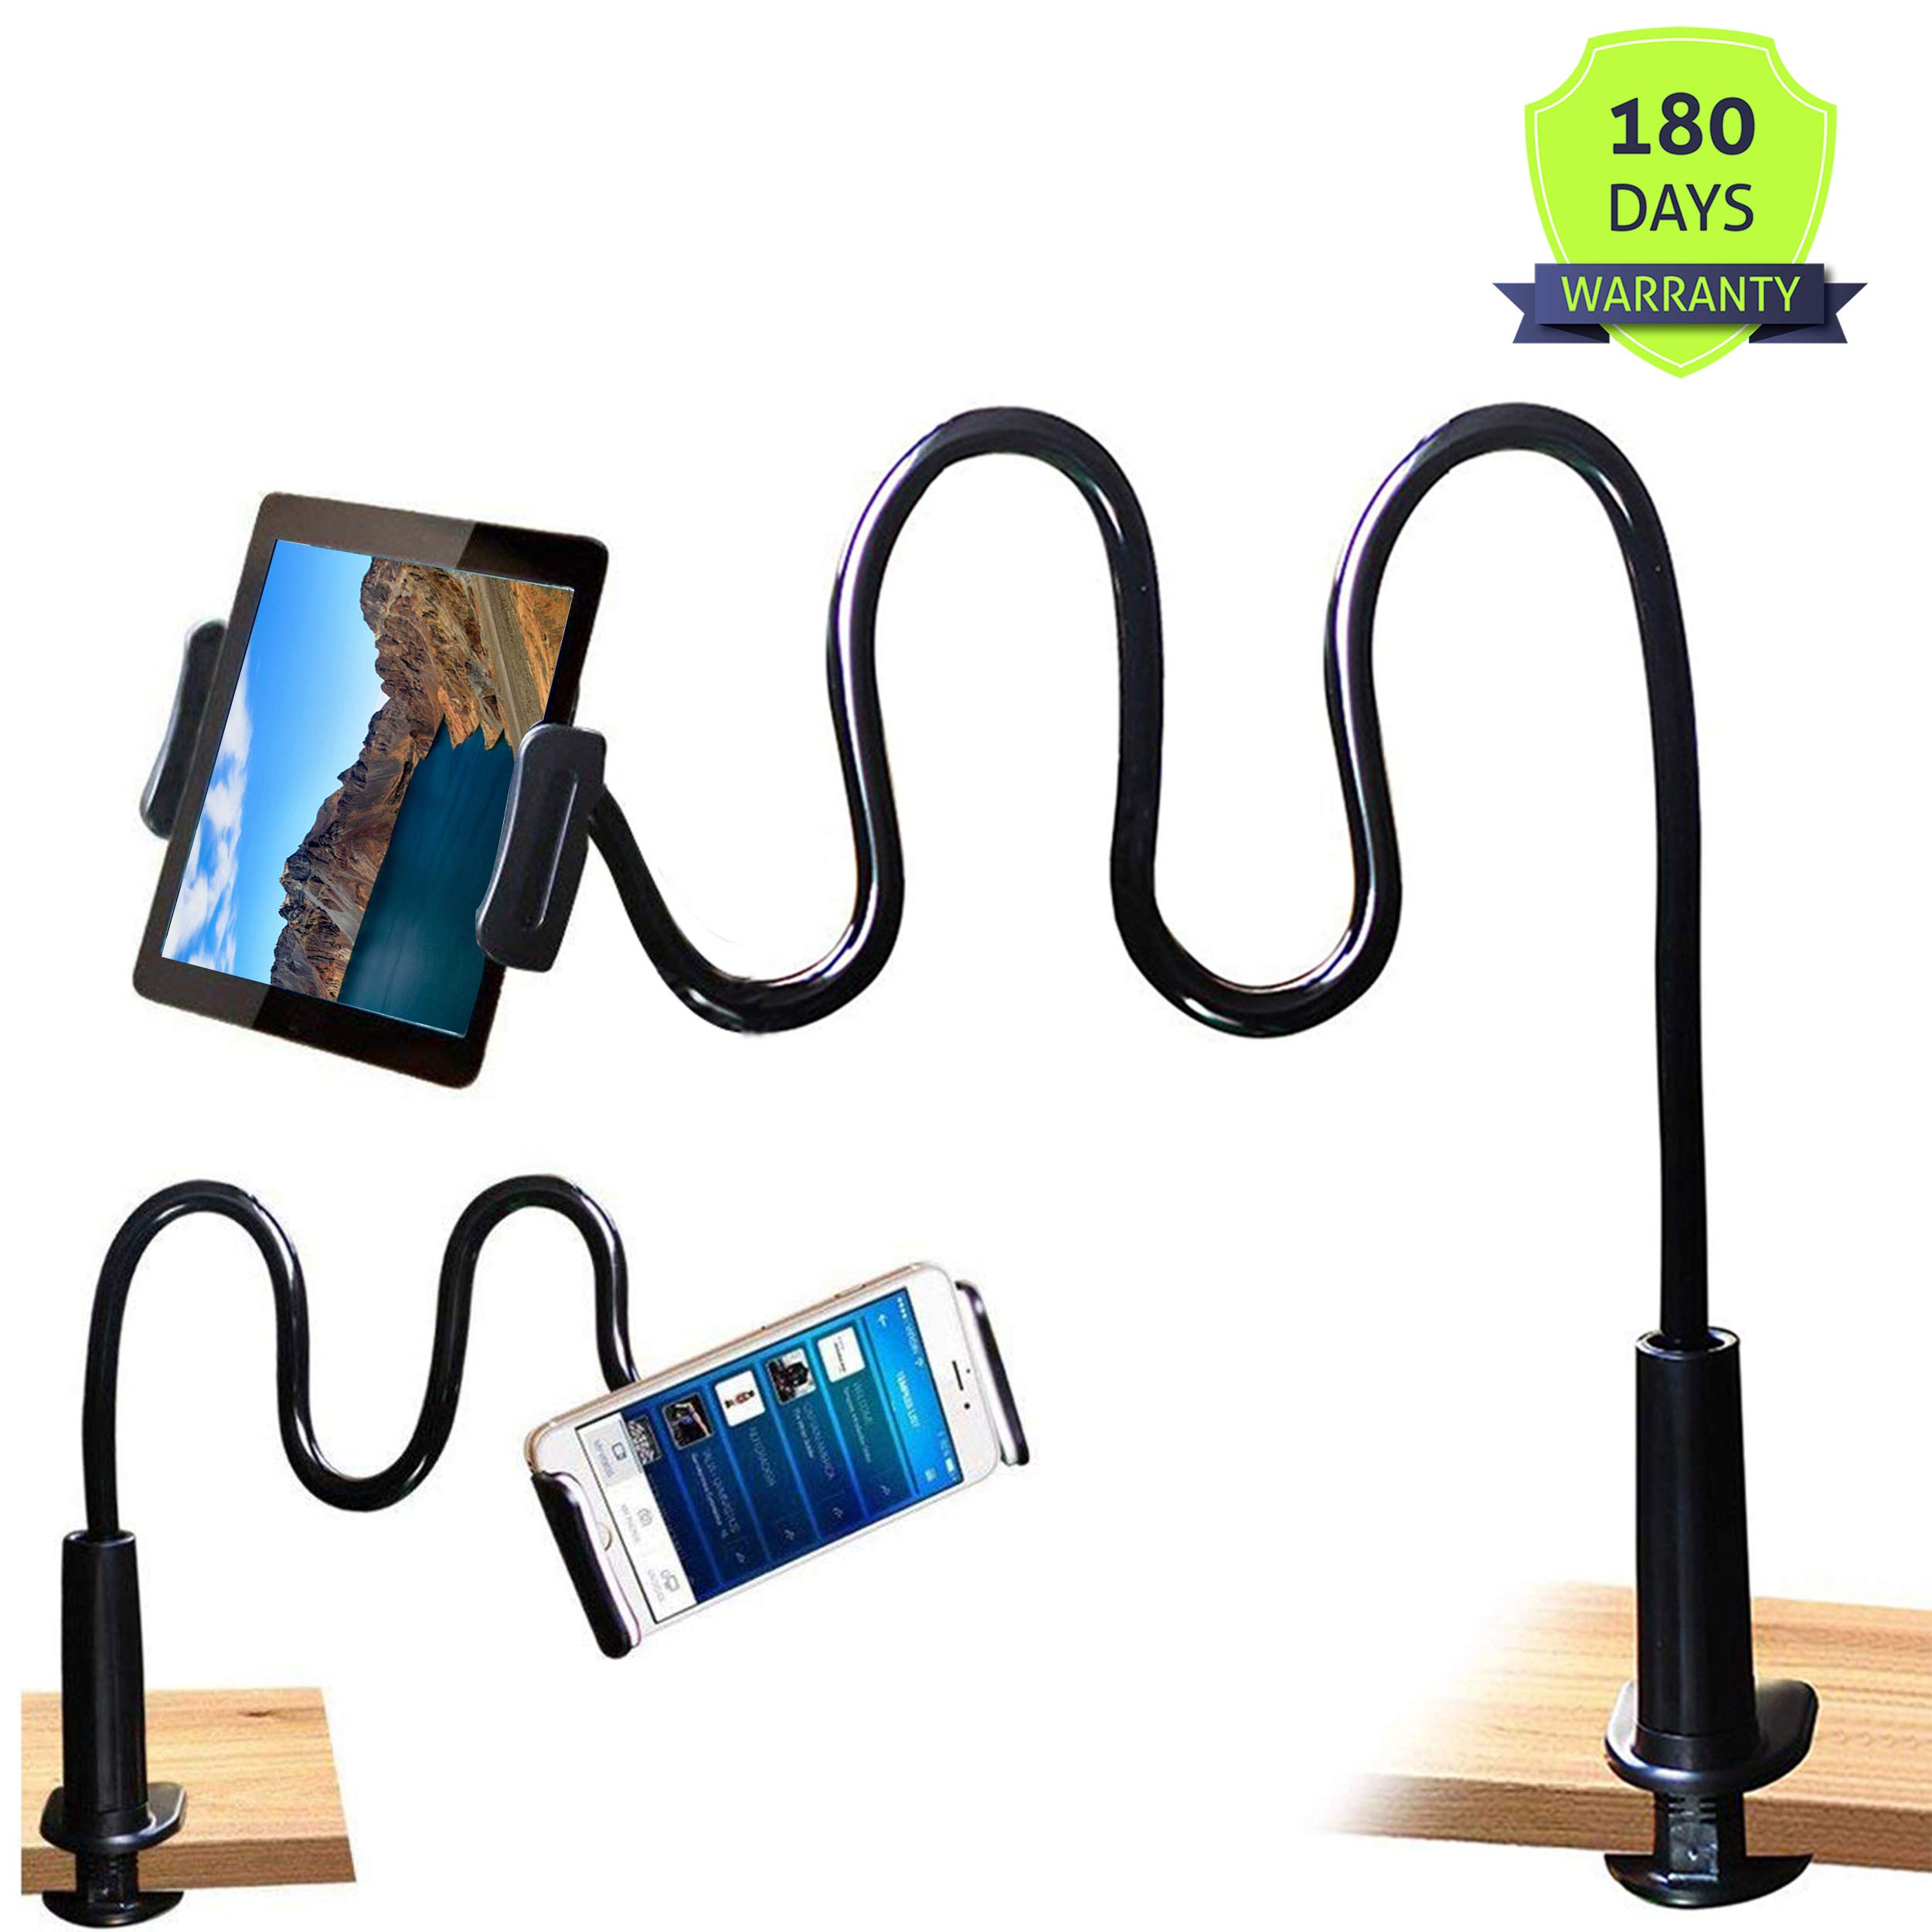 Tablet Stand Holder, Mount Holder Clip with Grip Flexible Long Arm Gooseneck Compatible with ipad iPhone/Nintendo Switch/Samsung Galaxy Tabs/Amazon Kindle Fire HD - Black by MAGIPEA